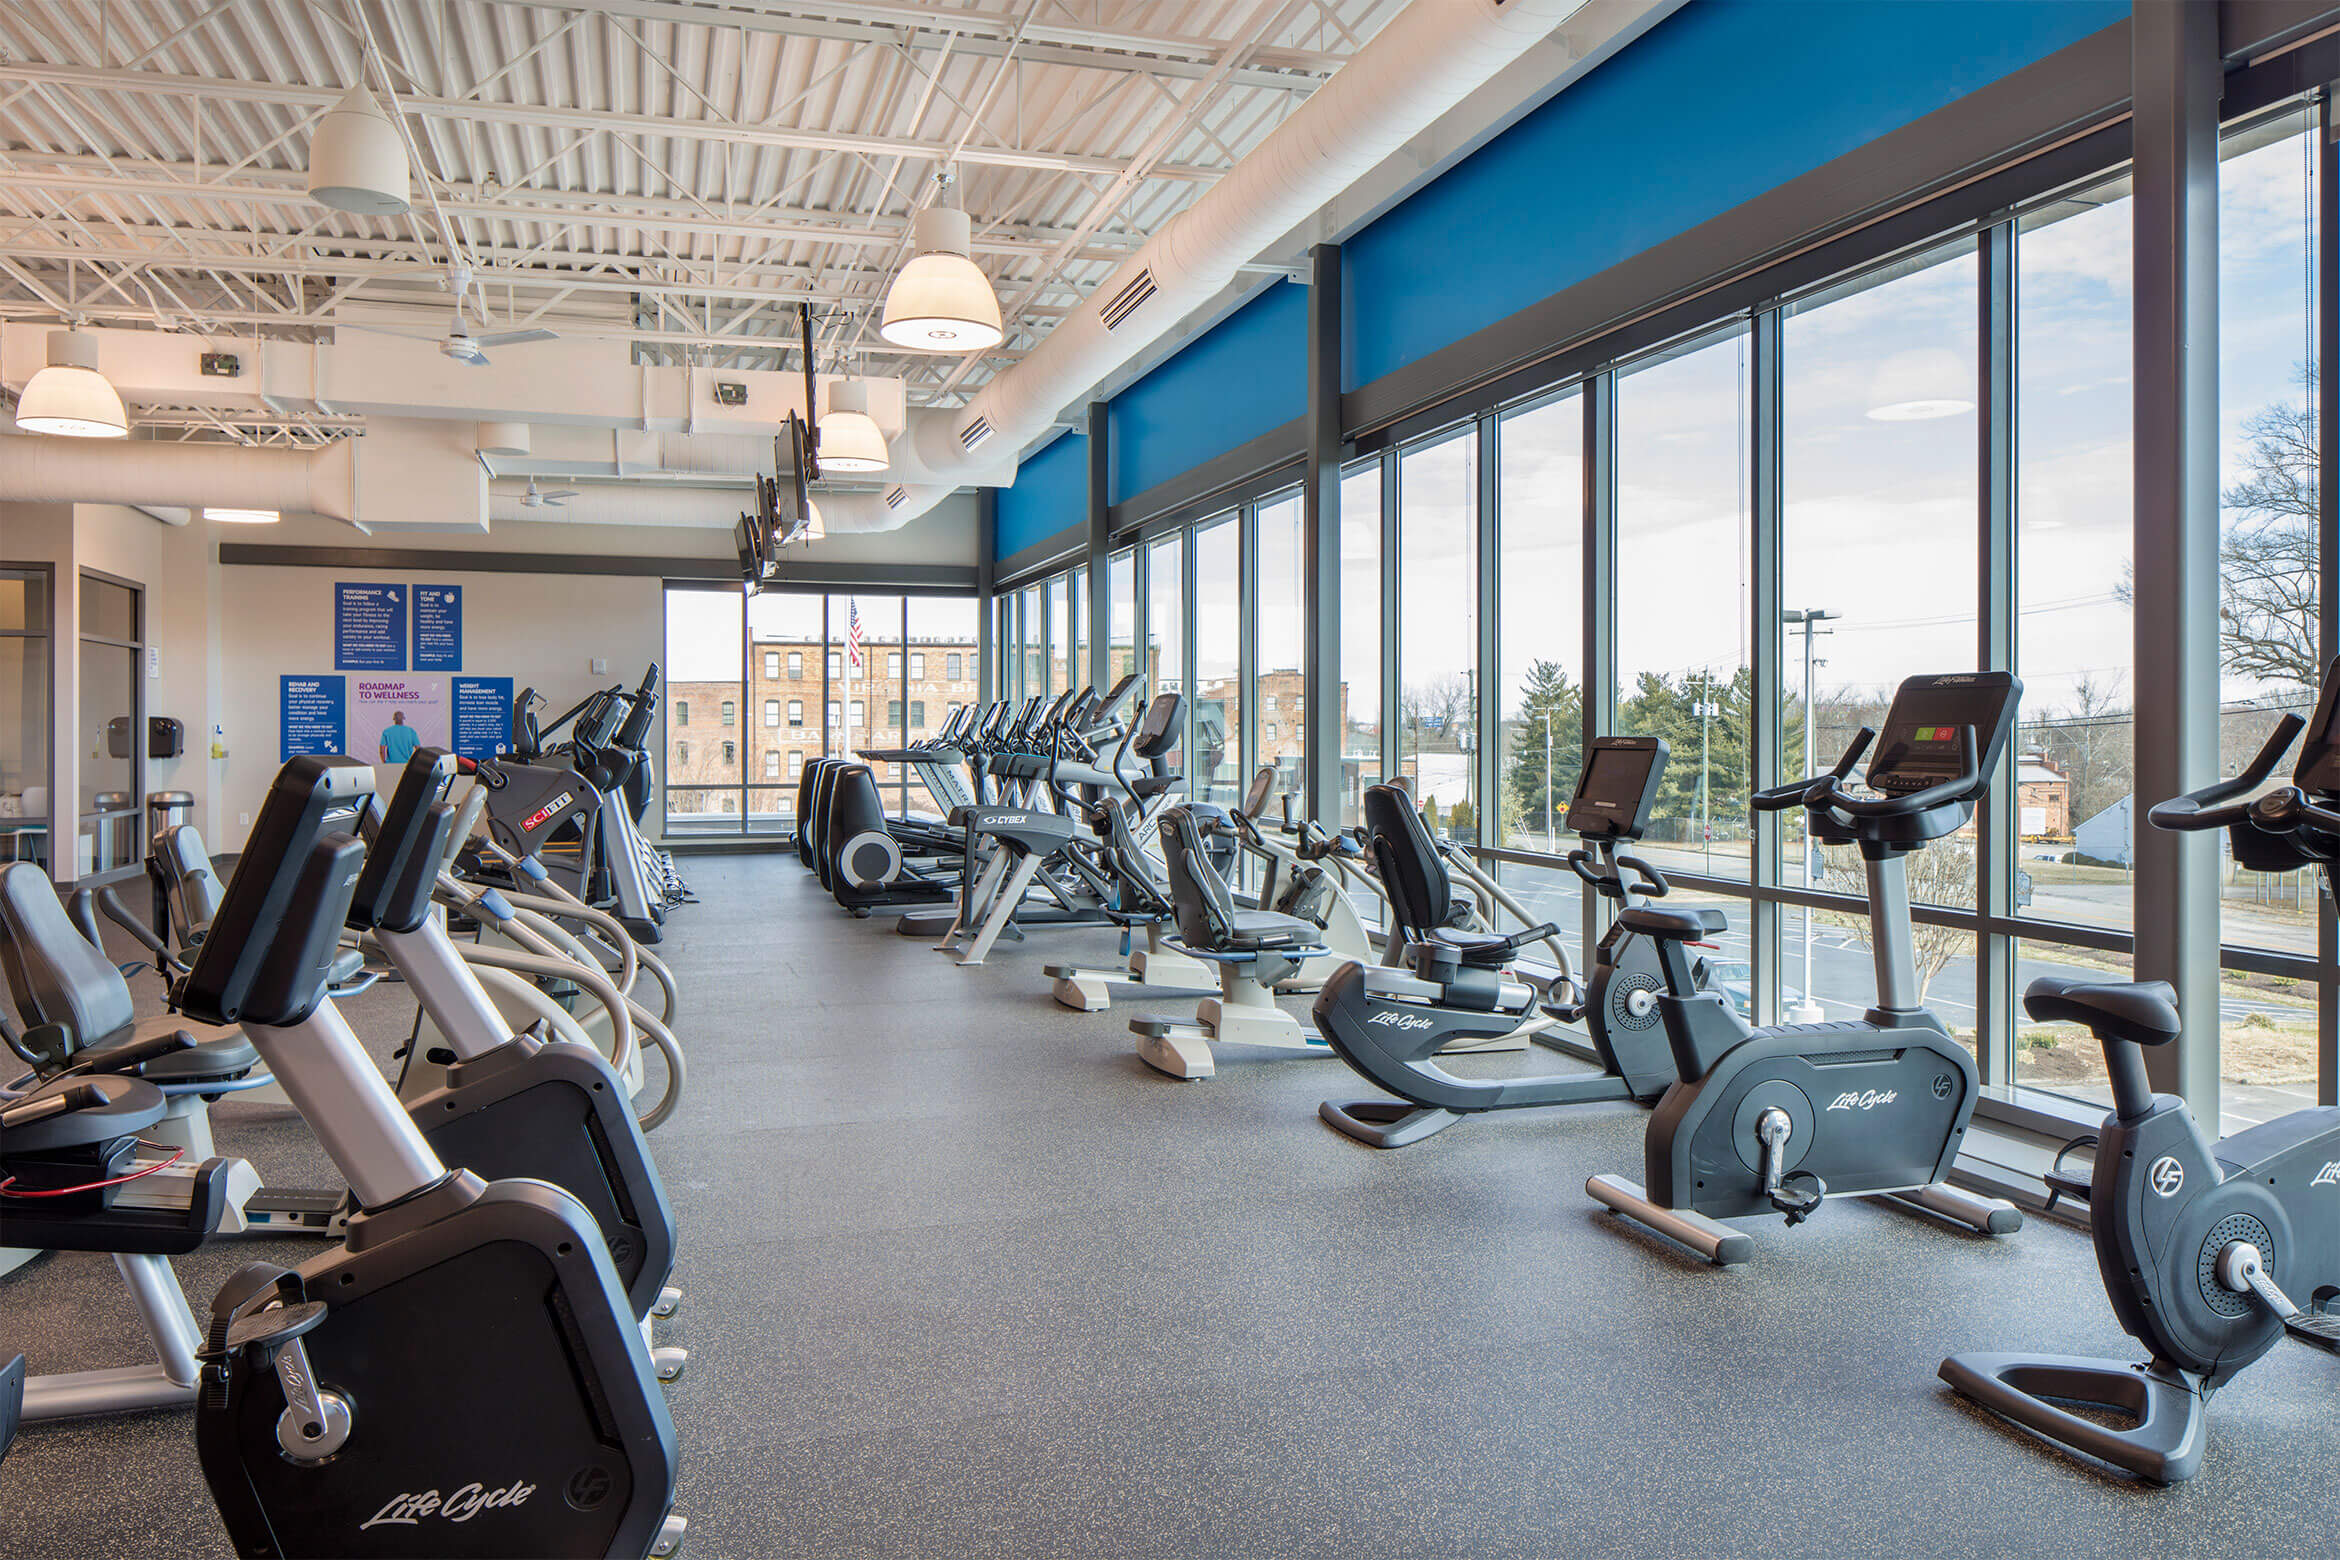 YMCA-Petersburg-Fitness-Room-2